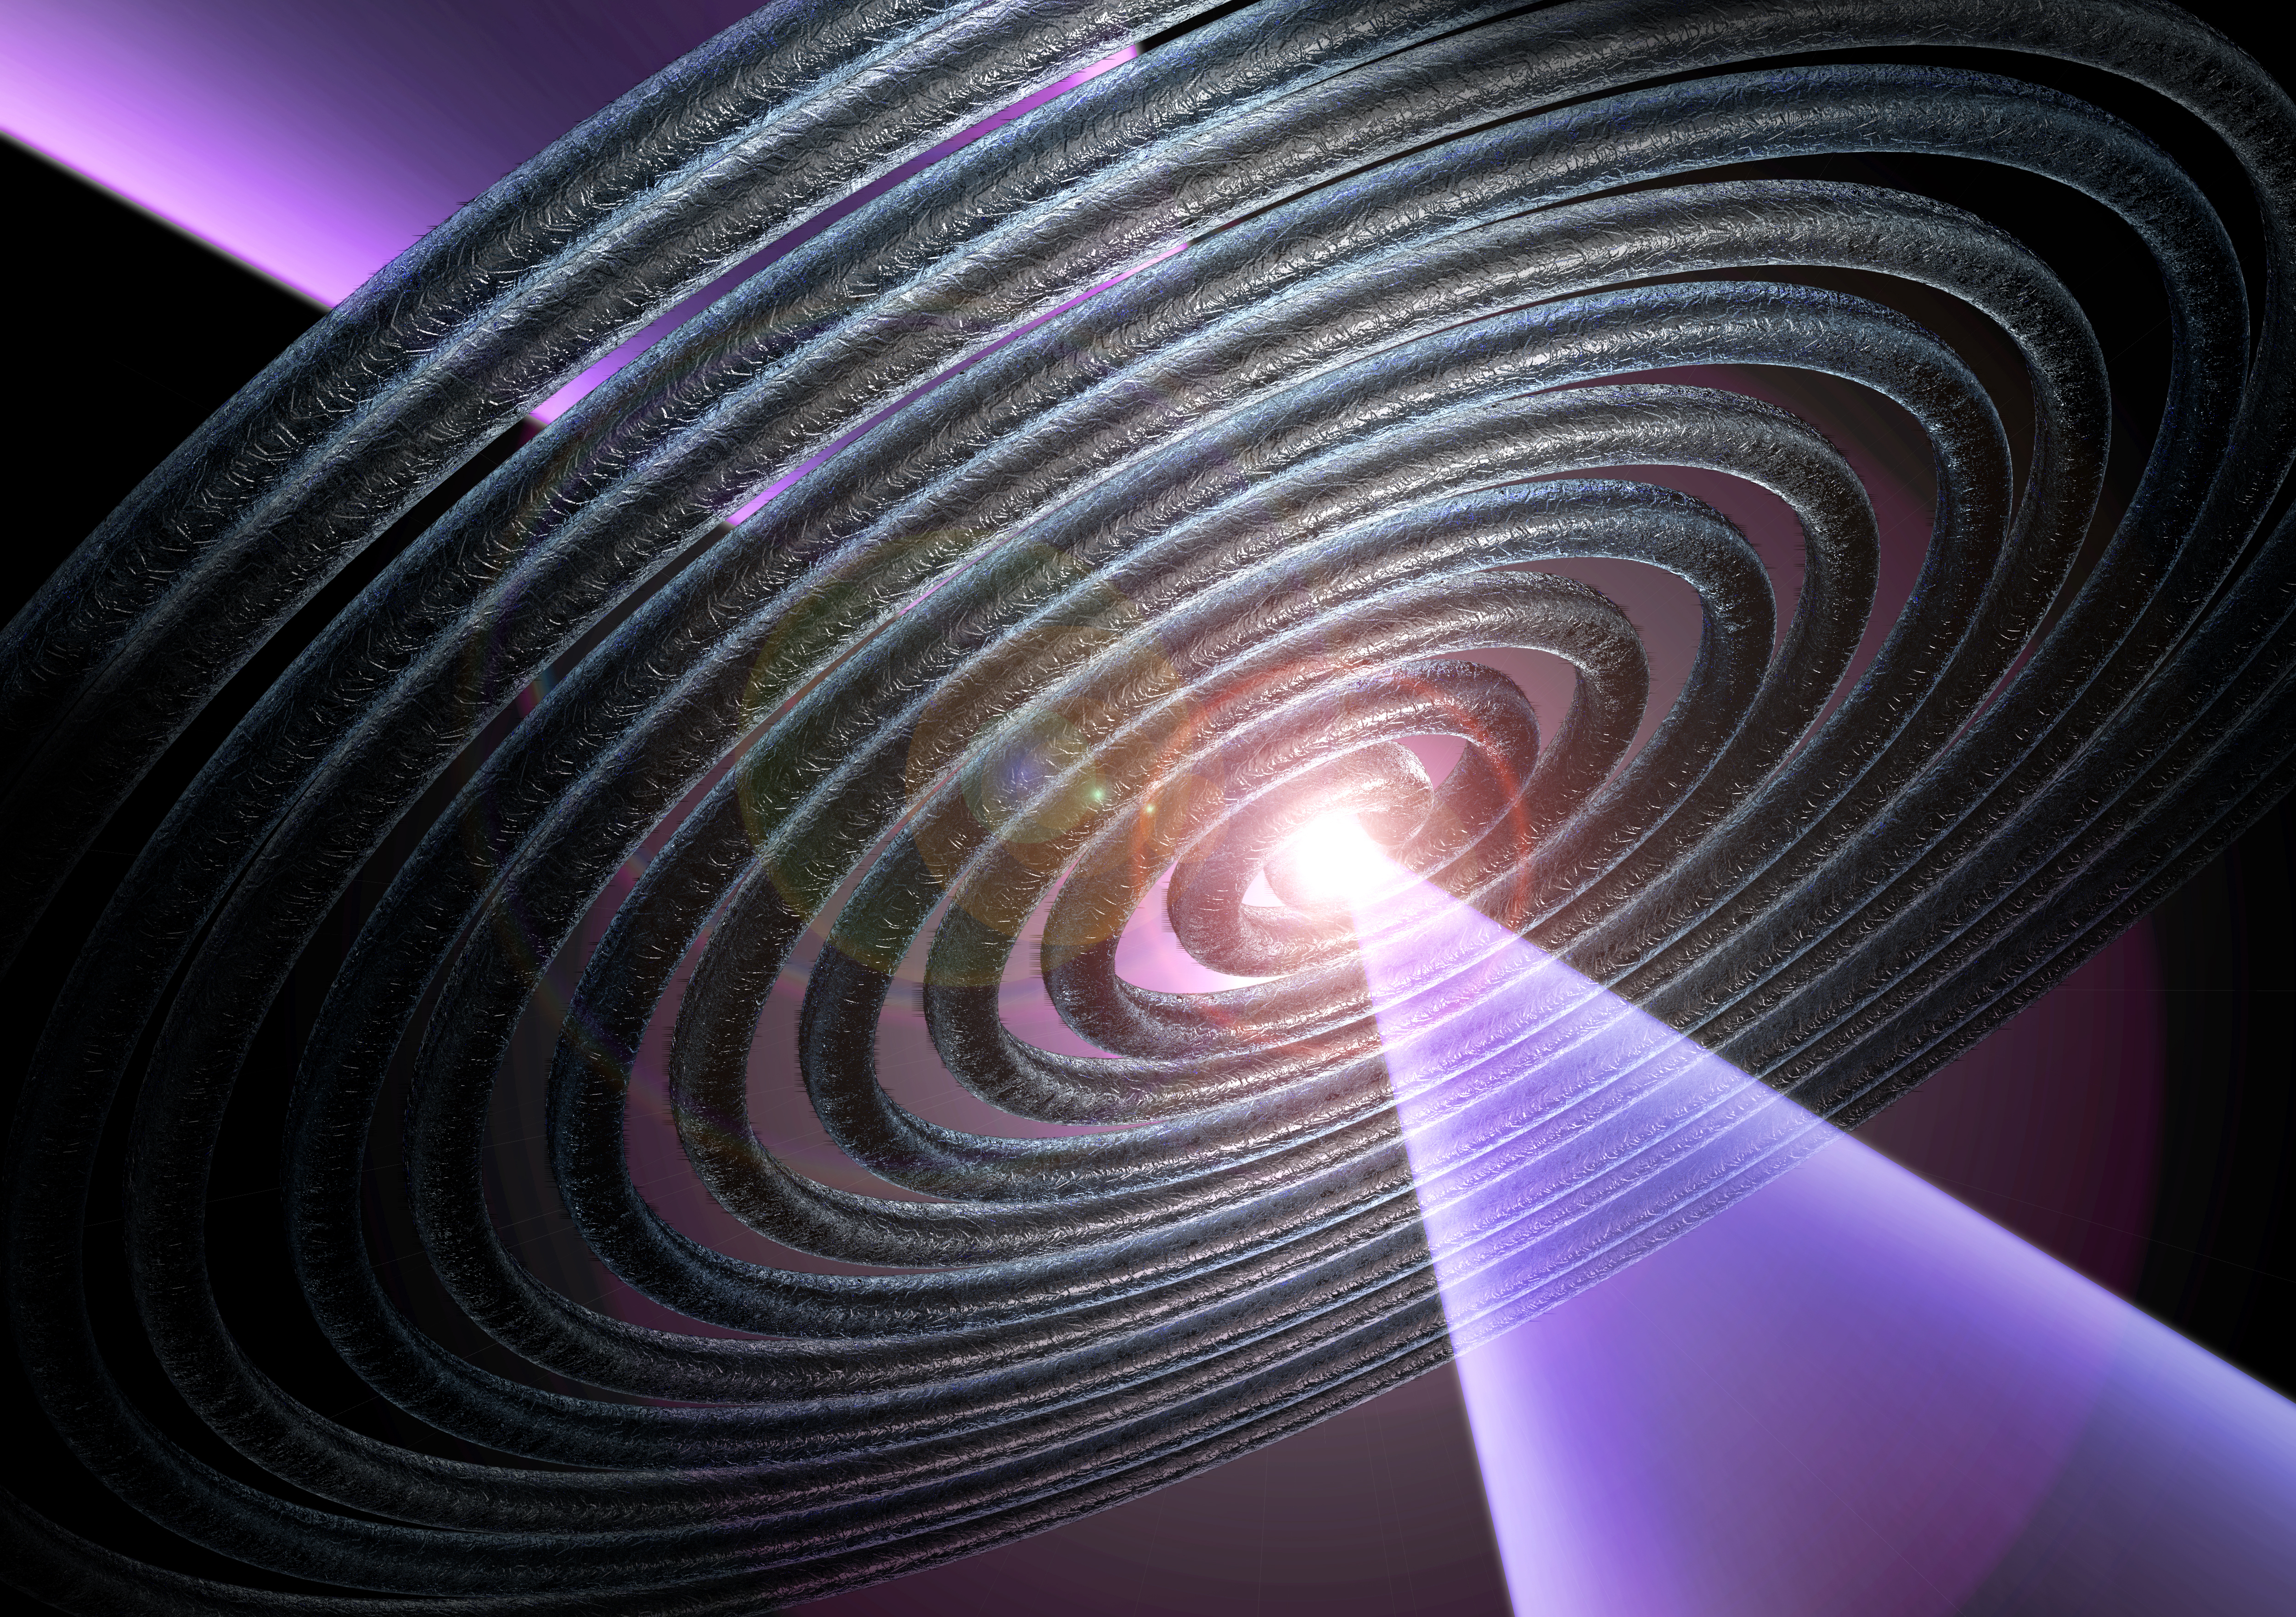 Gravitational waves: Oxford scientists offer exciting insights